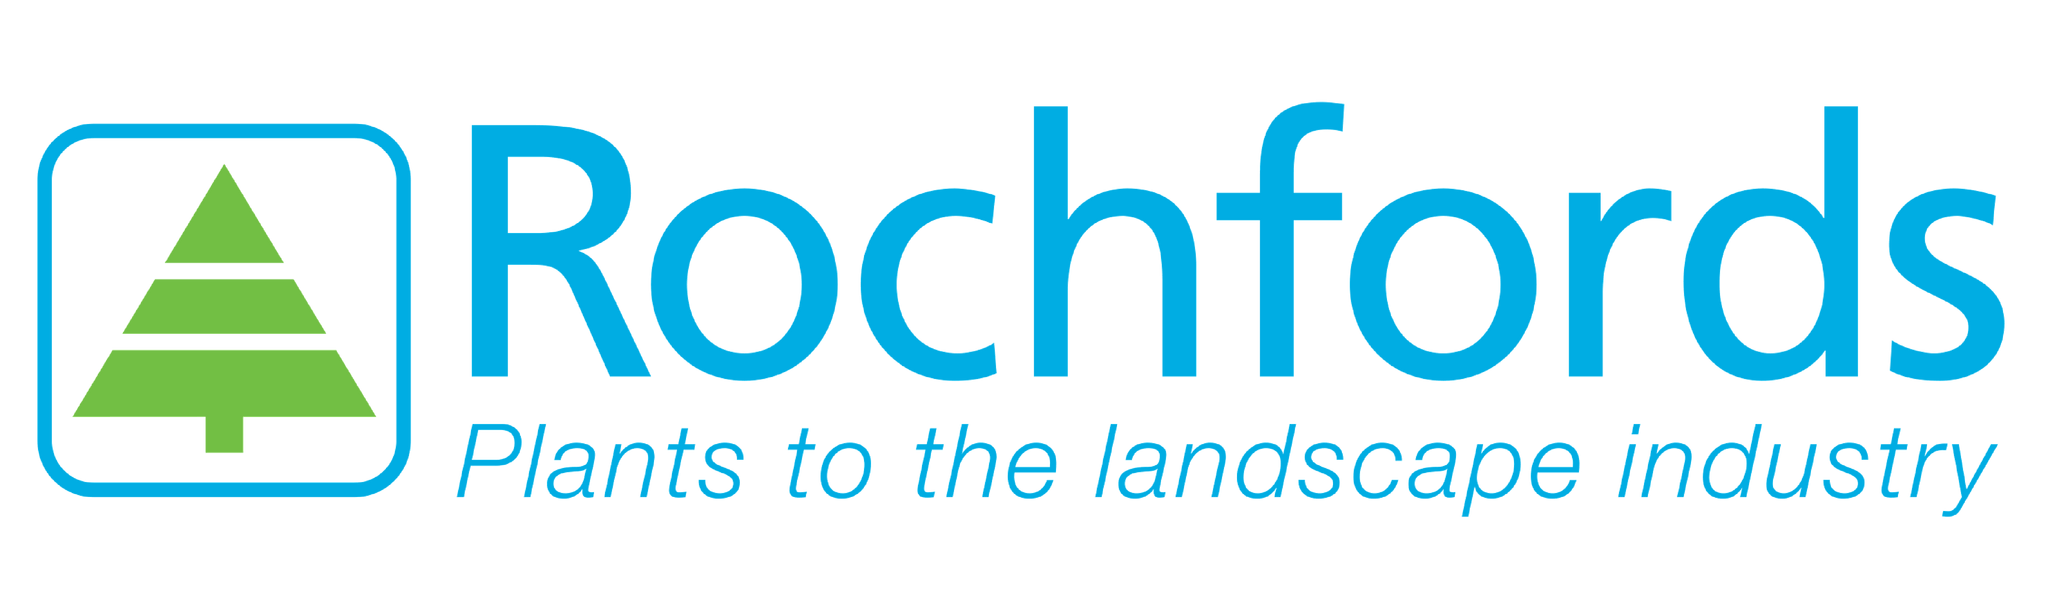 Joseph Rochford Gardens ltd